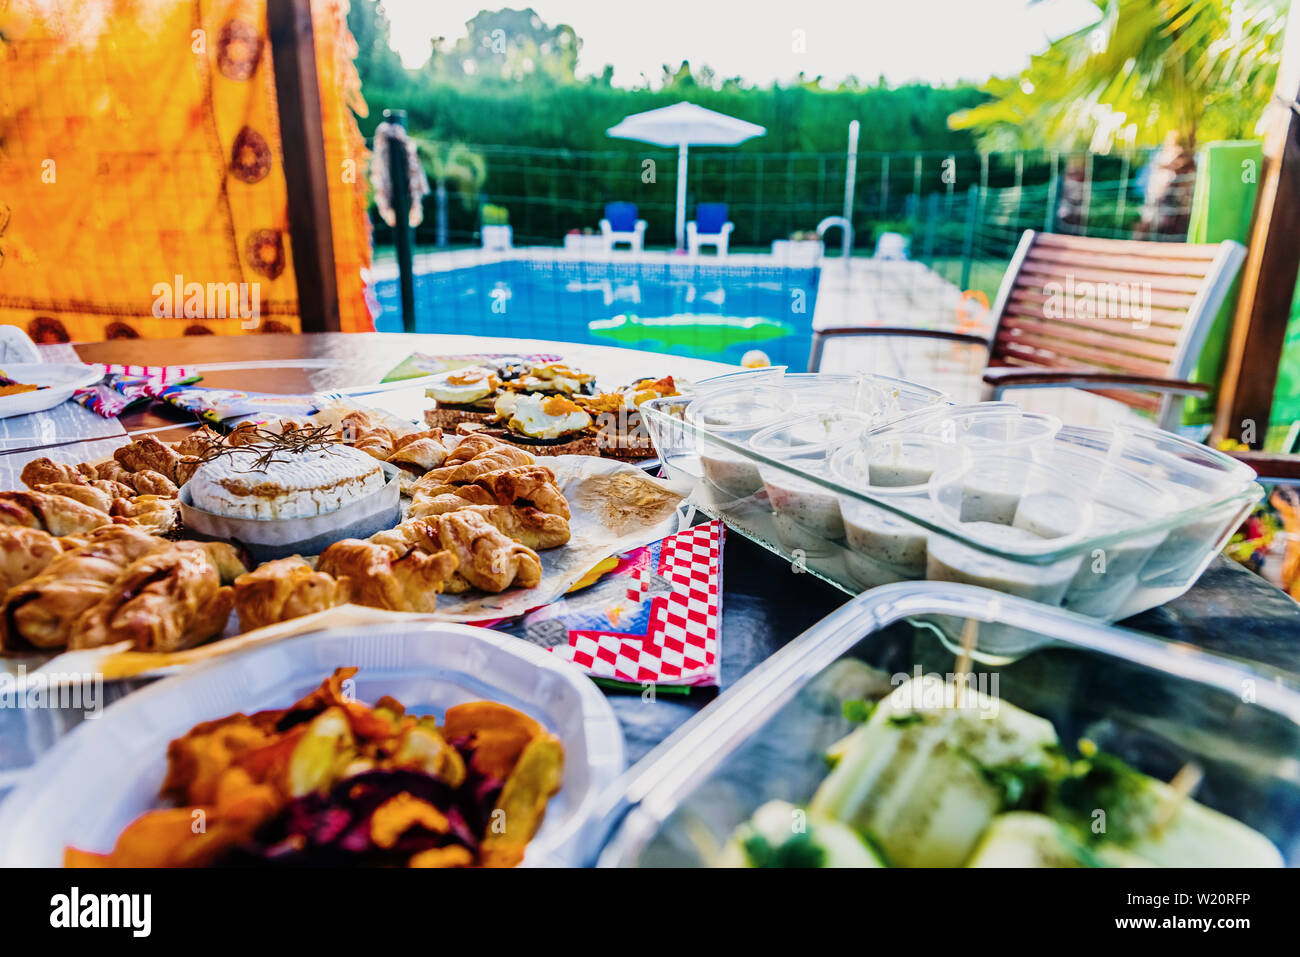 A copious snack served by the pool during the summer holidays. Stock Photo